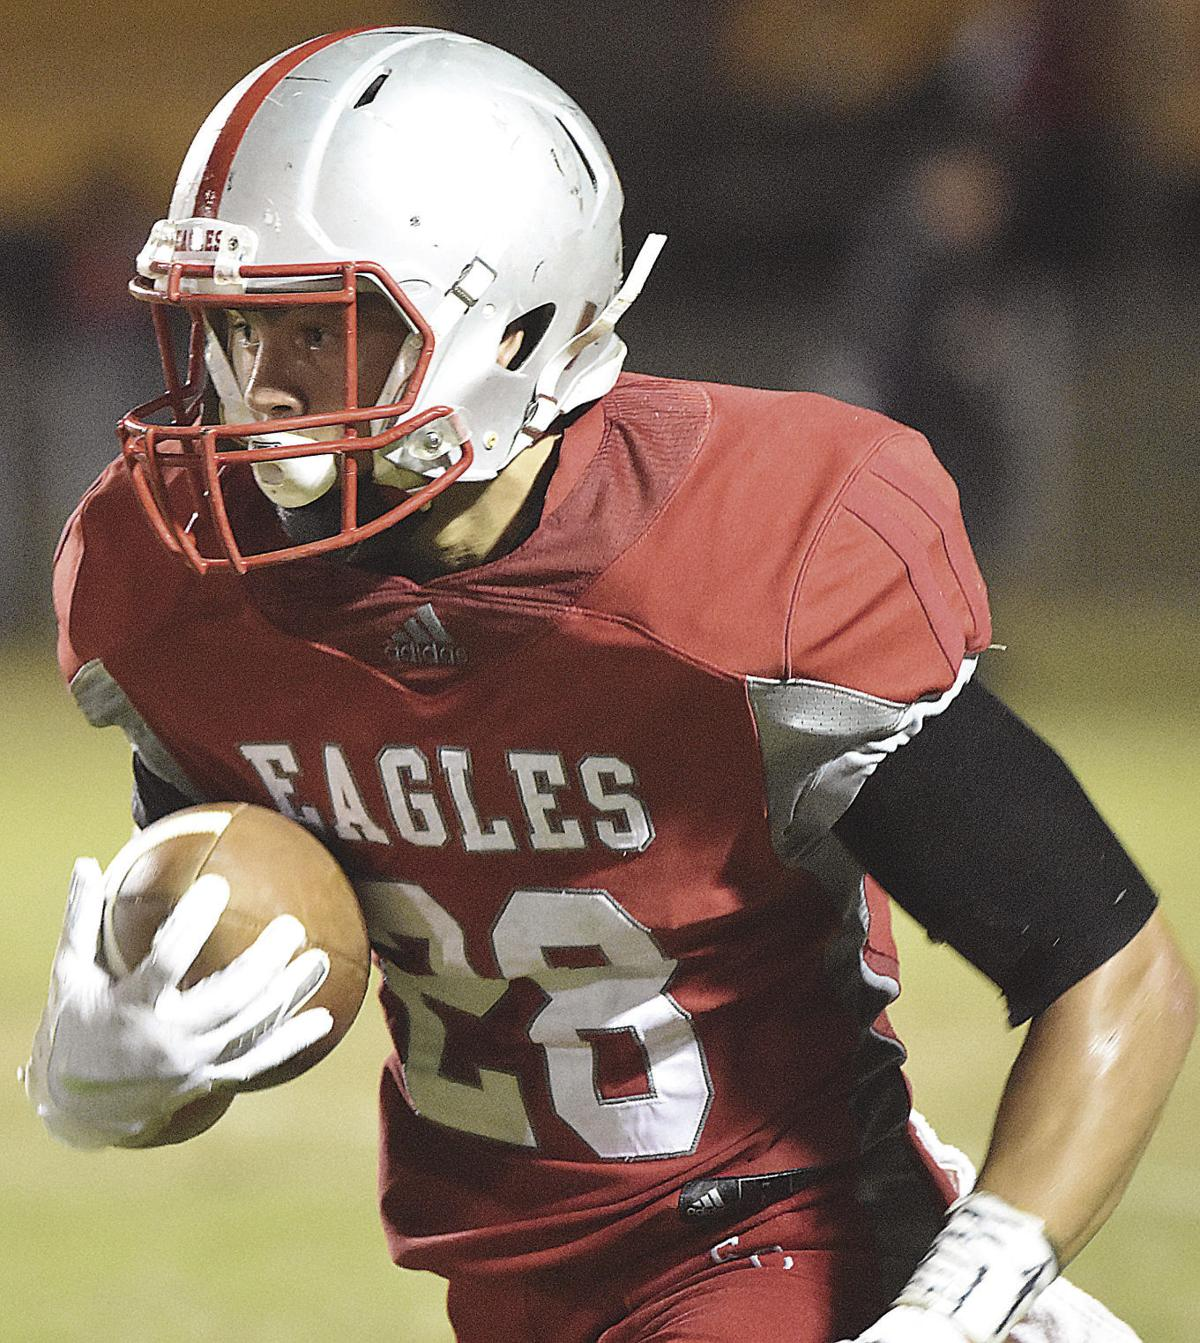 Eagles take winning streak into district play, down Titans, 31-14